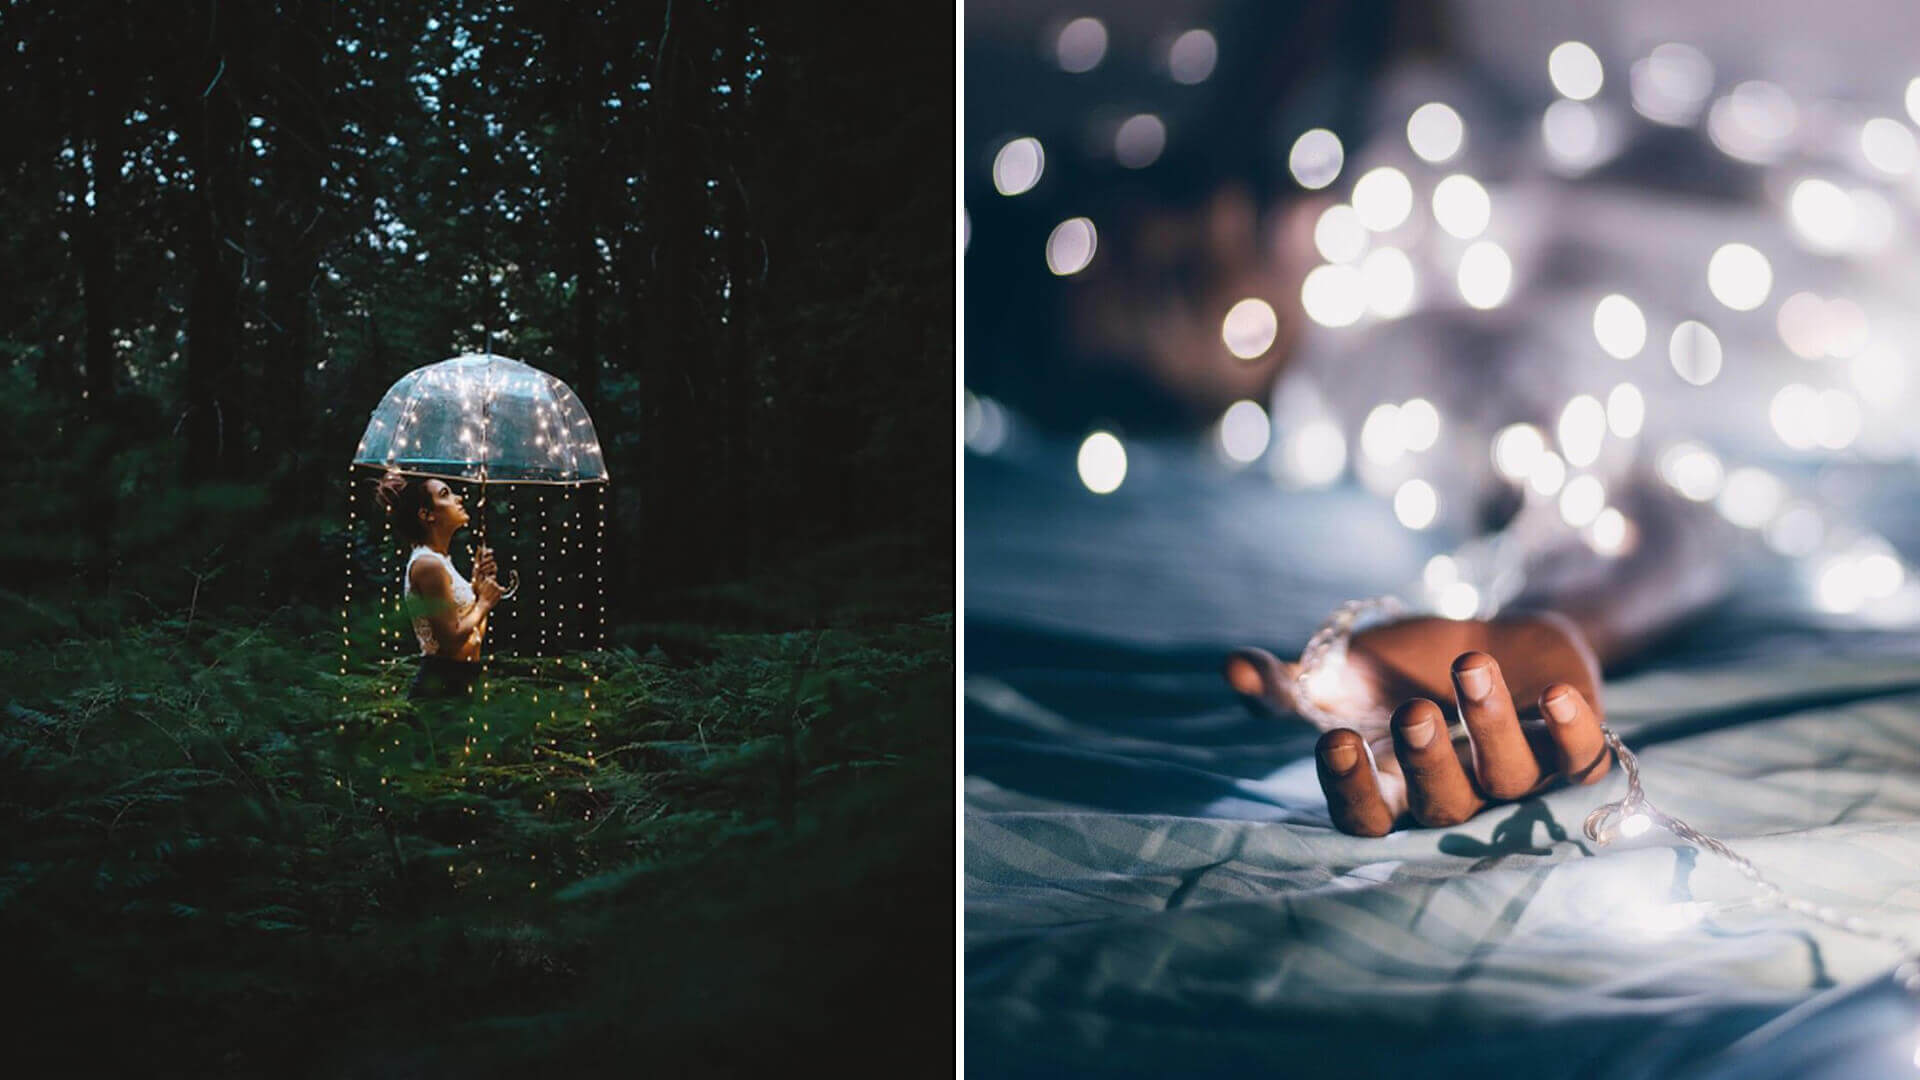 Aesthetic Fairy Lights for Photography